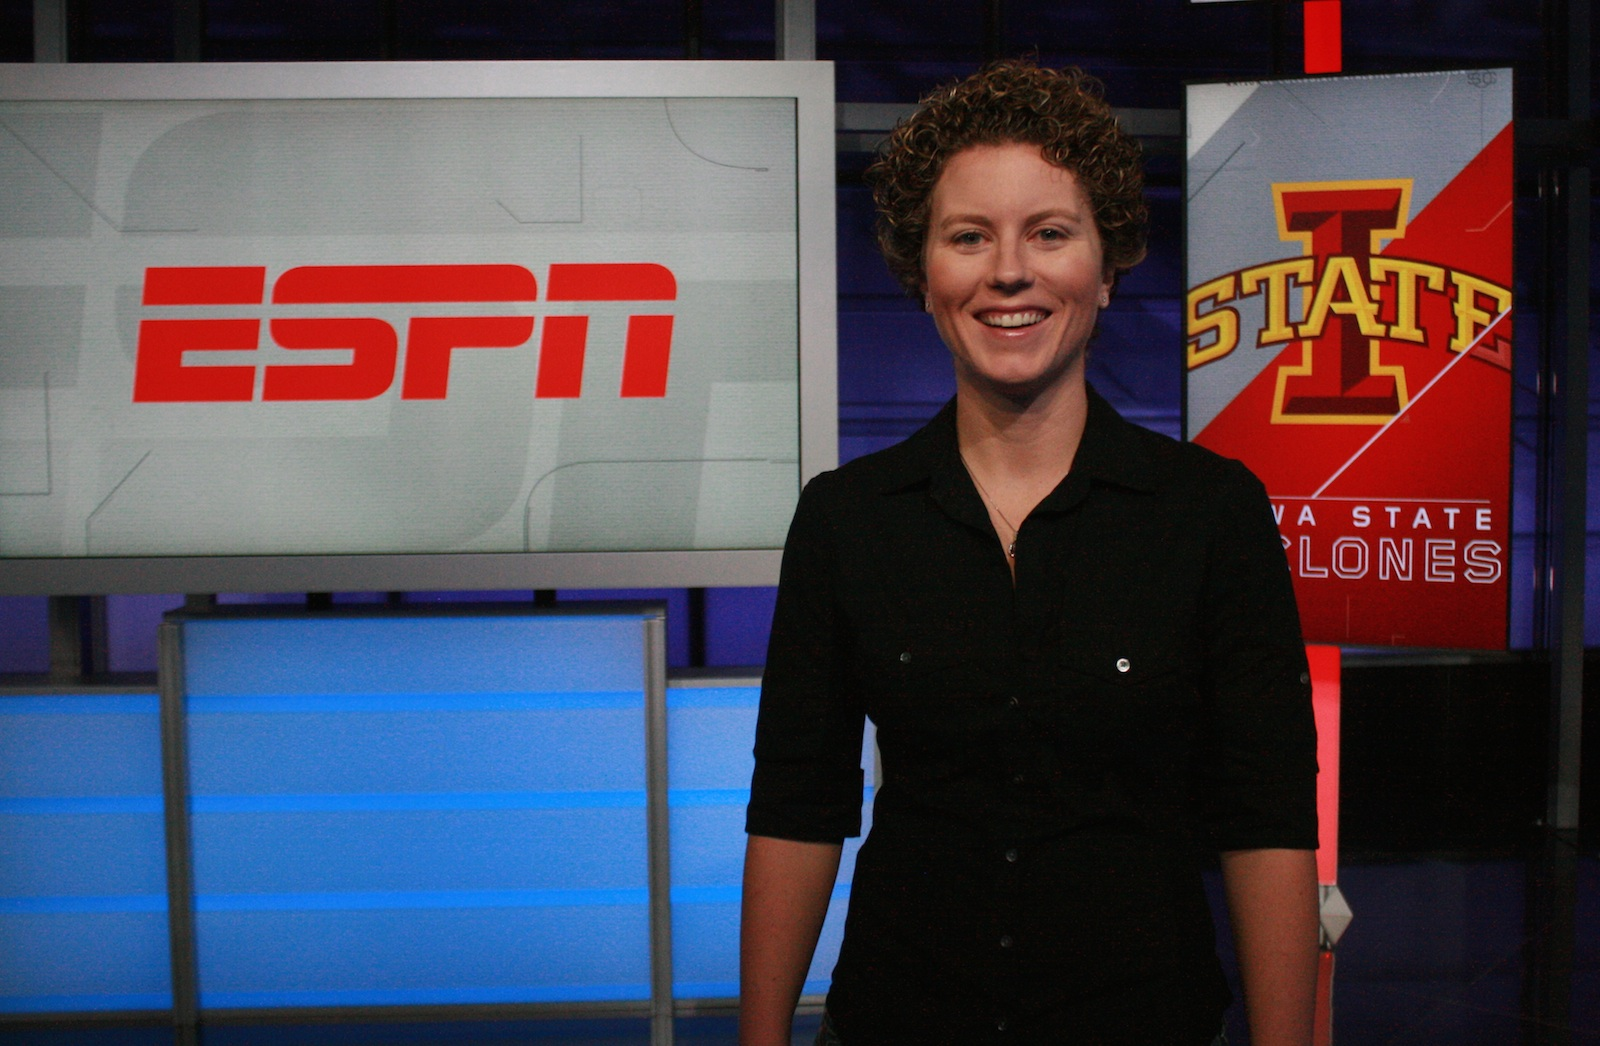 Emma Reed on set at ESPN with digital signs displaying the ESPN logo and Iowa State logo behind her.